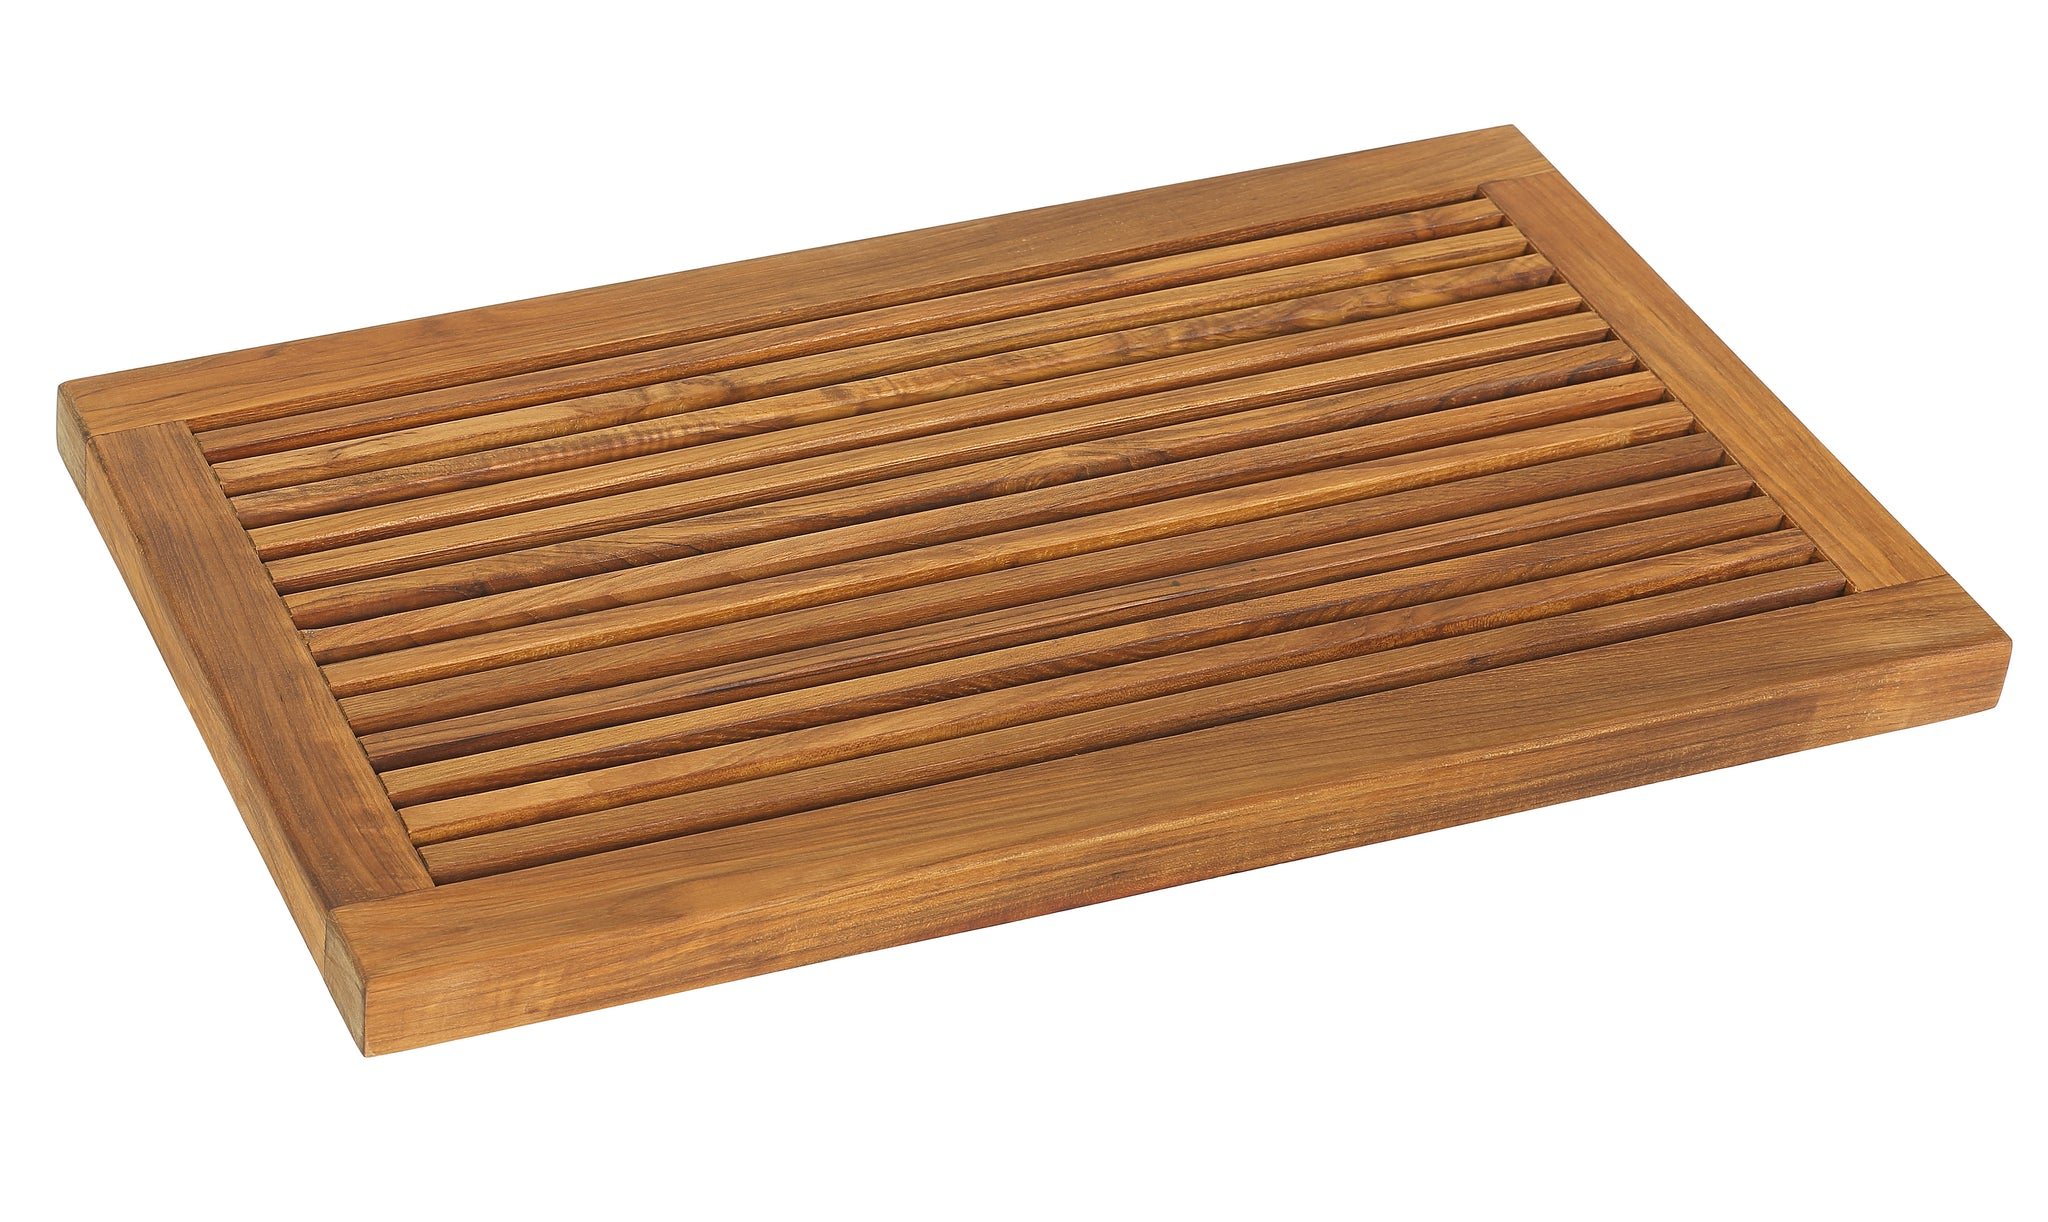 "Bare Decor Dasha Spa Bath or Door Mat in Solid Teak Wood Oiled Finish, Large: 31.5"" x 17.75"""